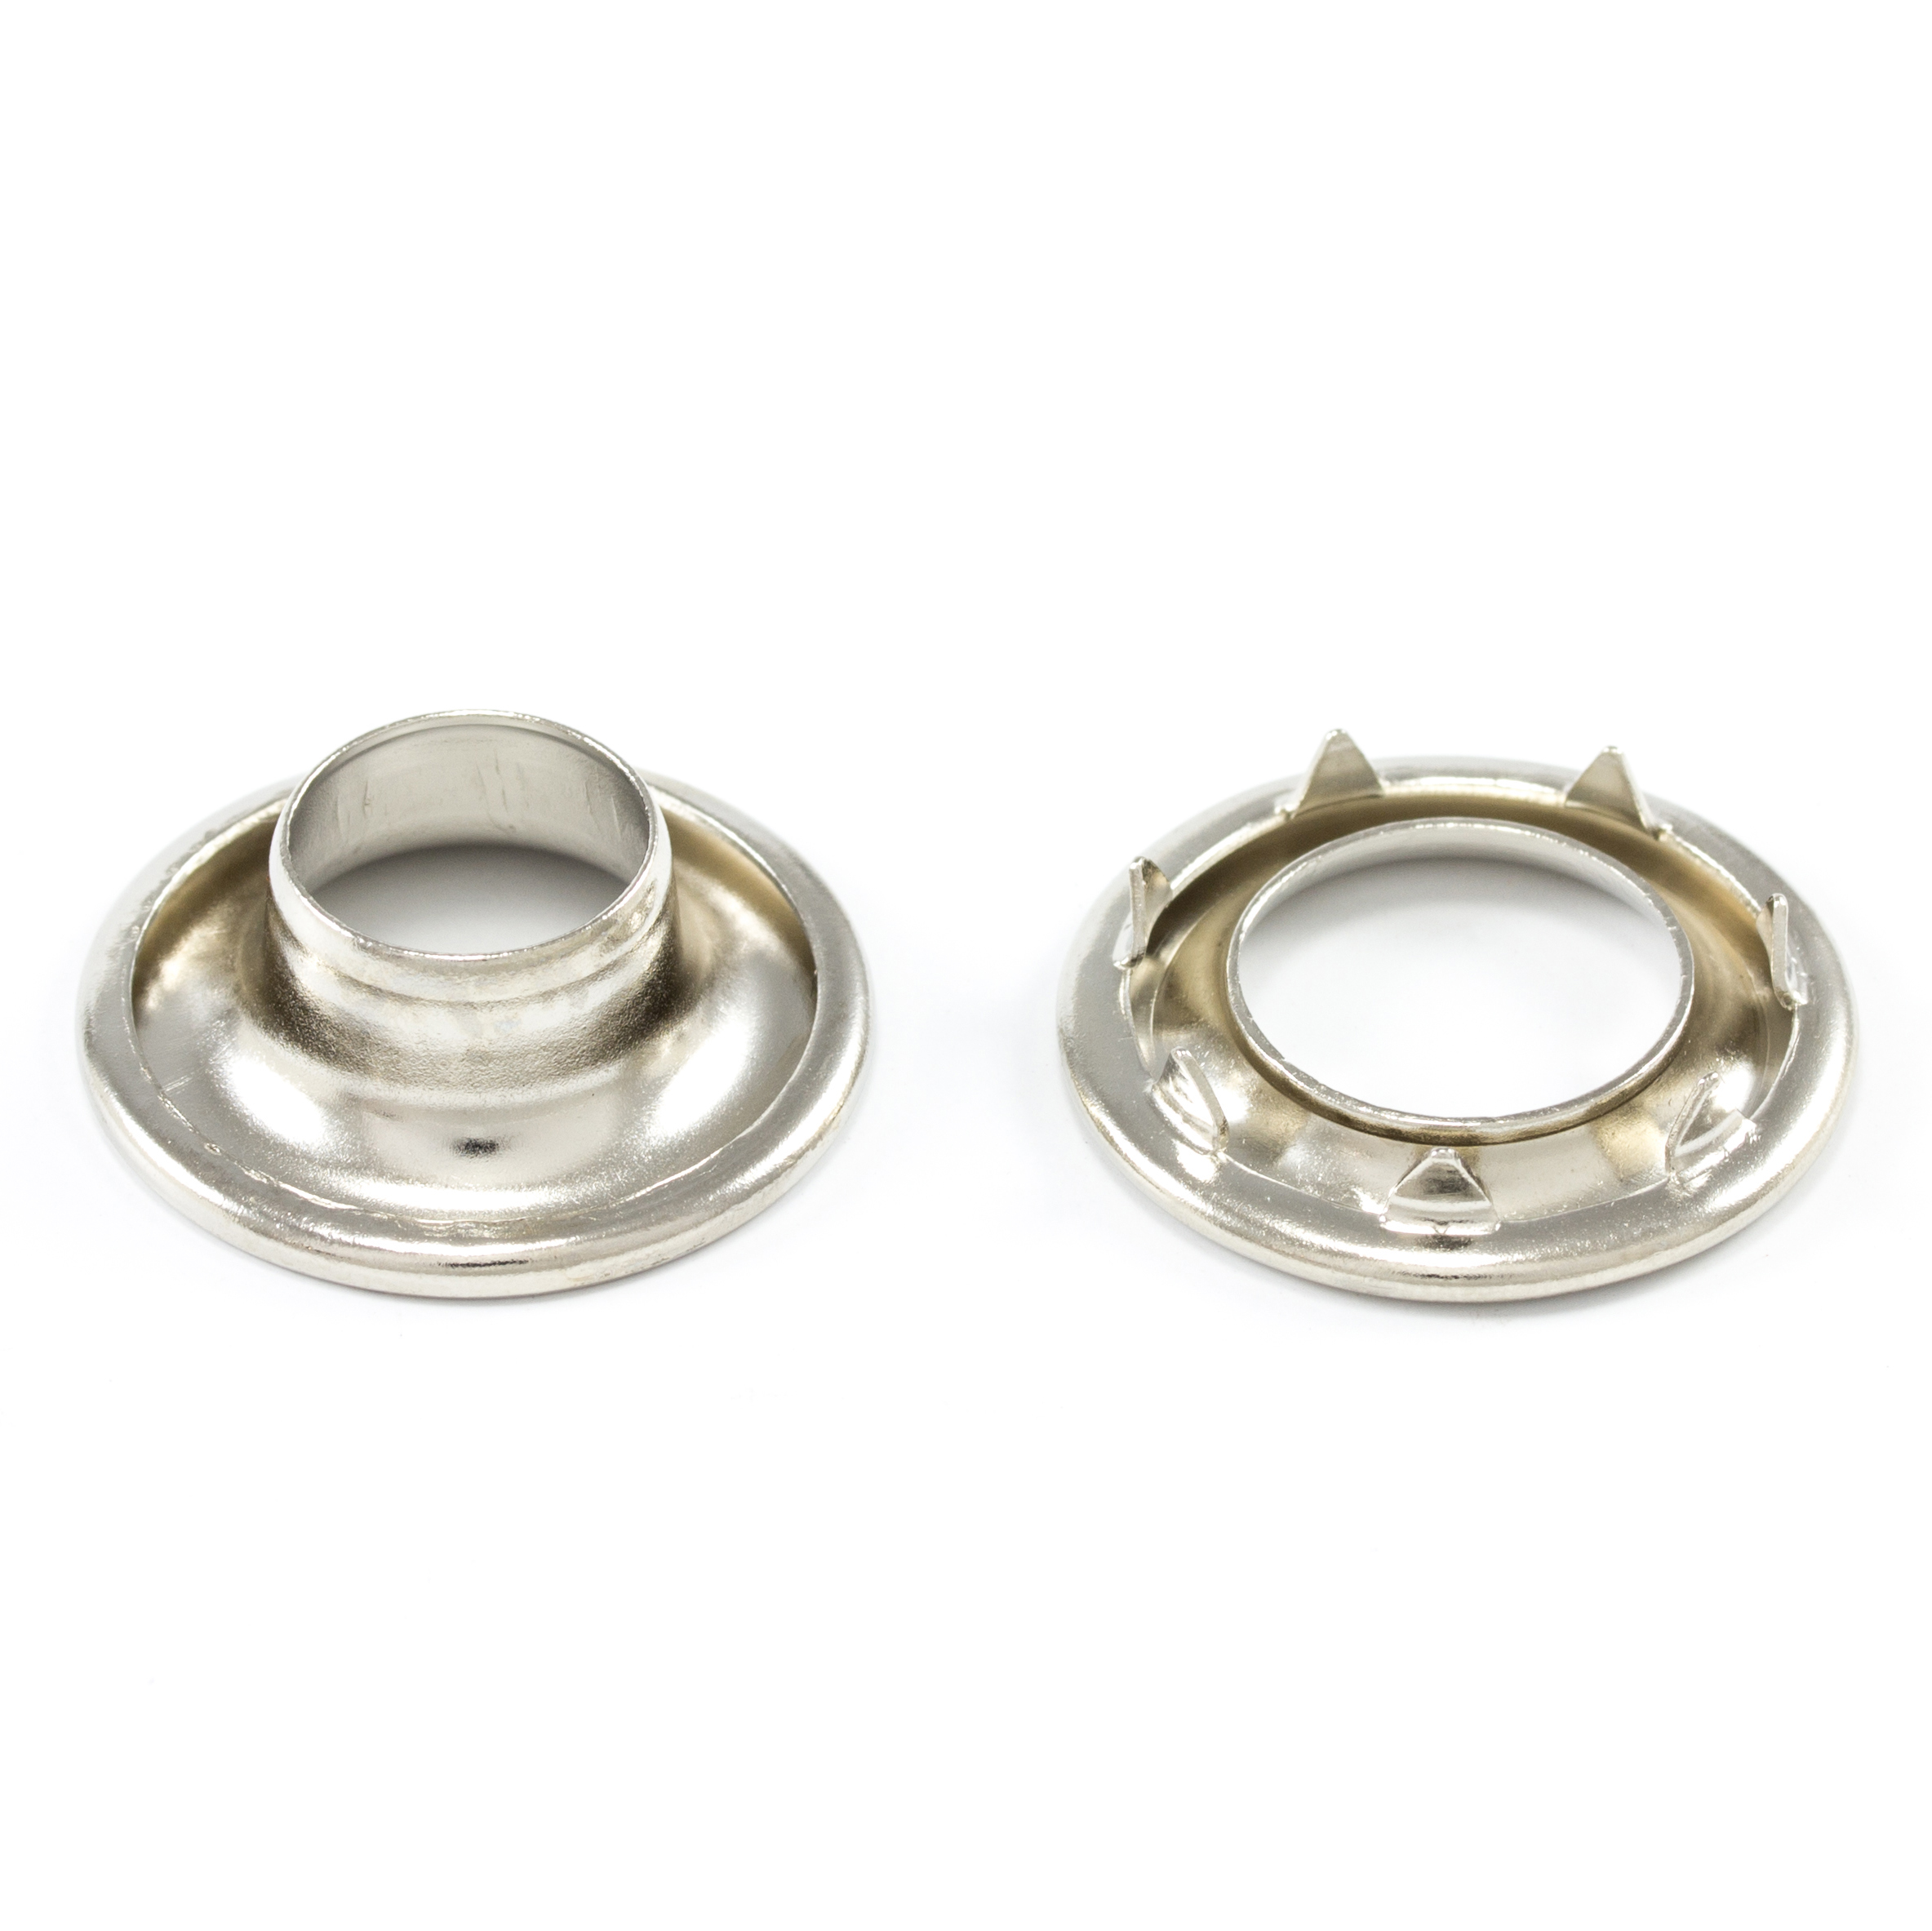 DOT Rolled Rim Grommet with Spur Washer #3 Nickel Plated Brass 15/32